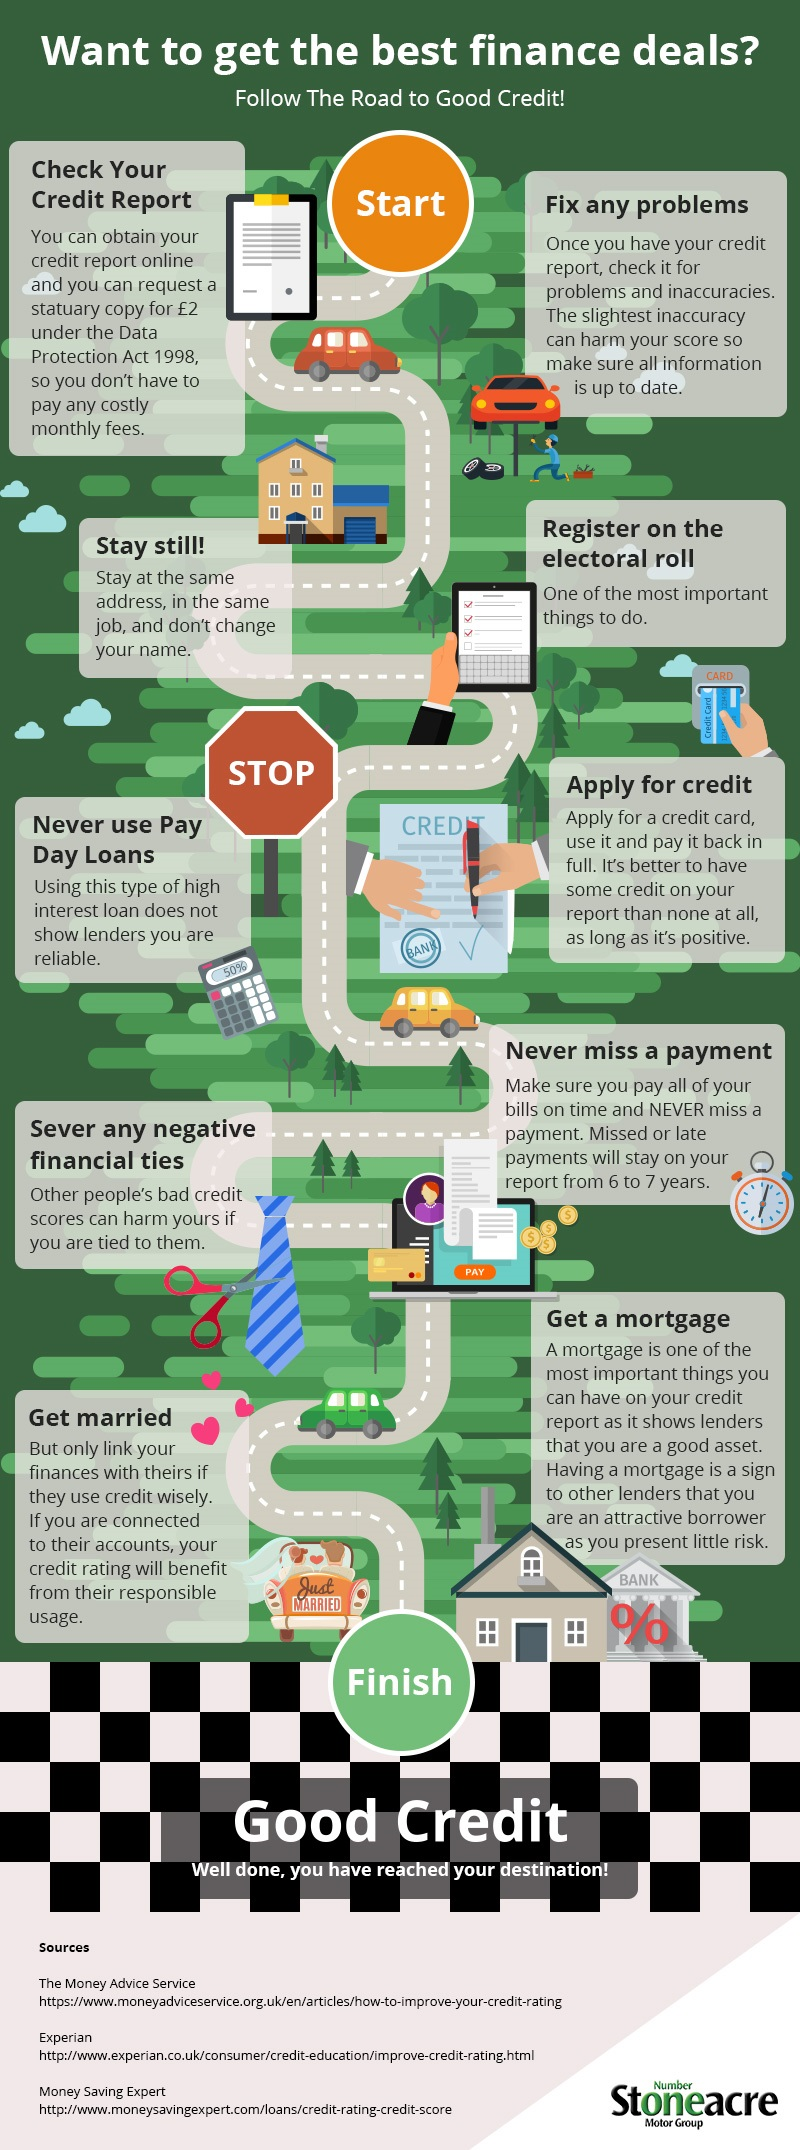 The road to good credit - infographic image